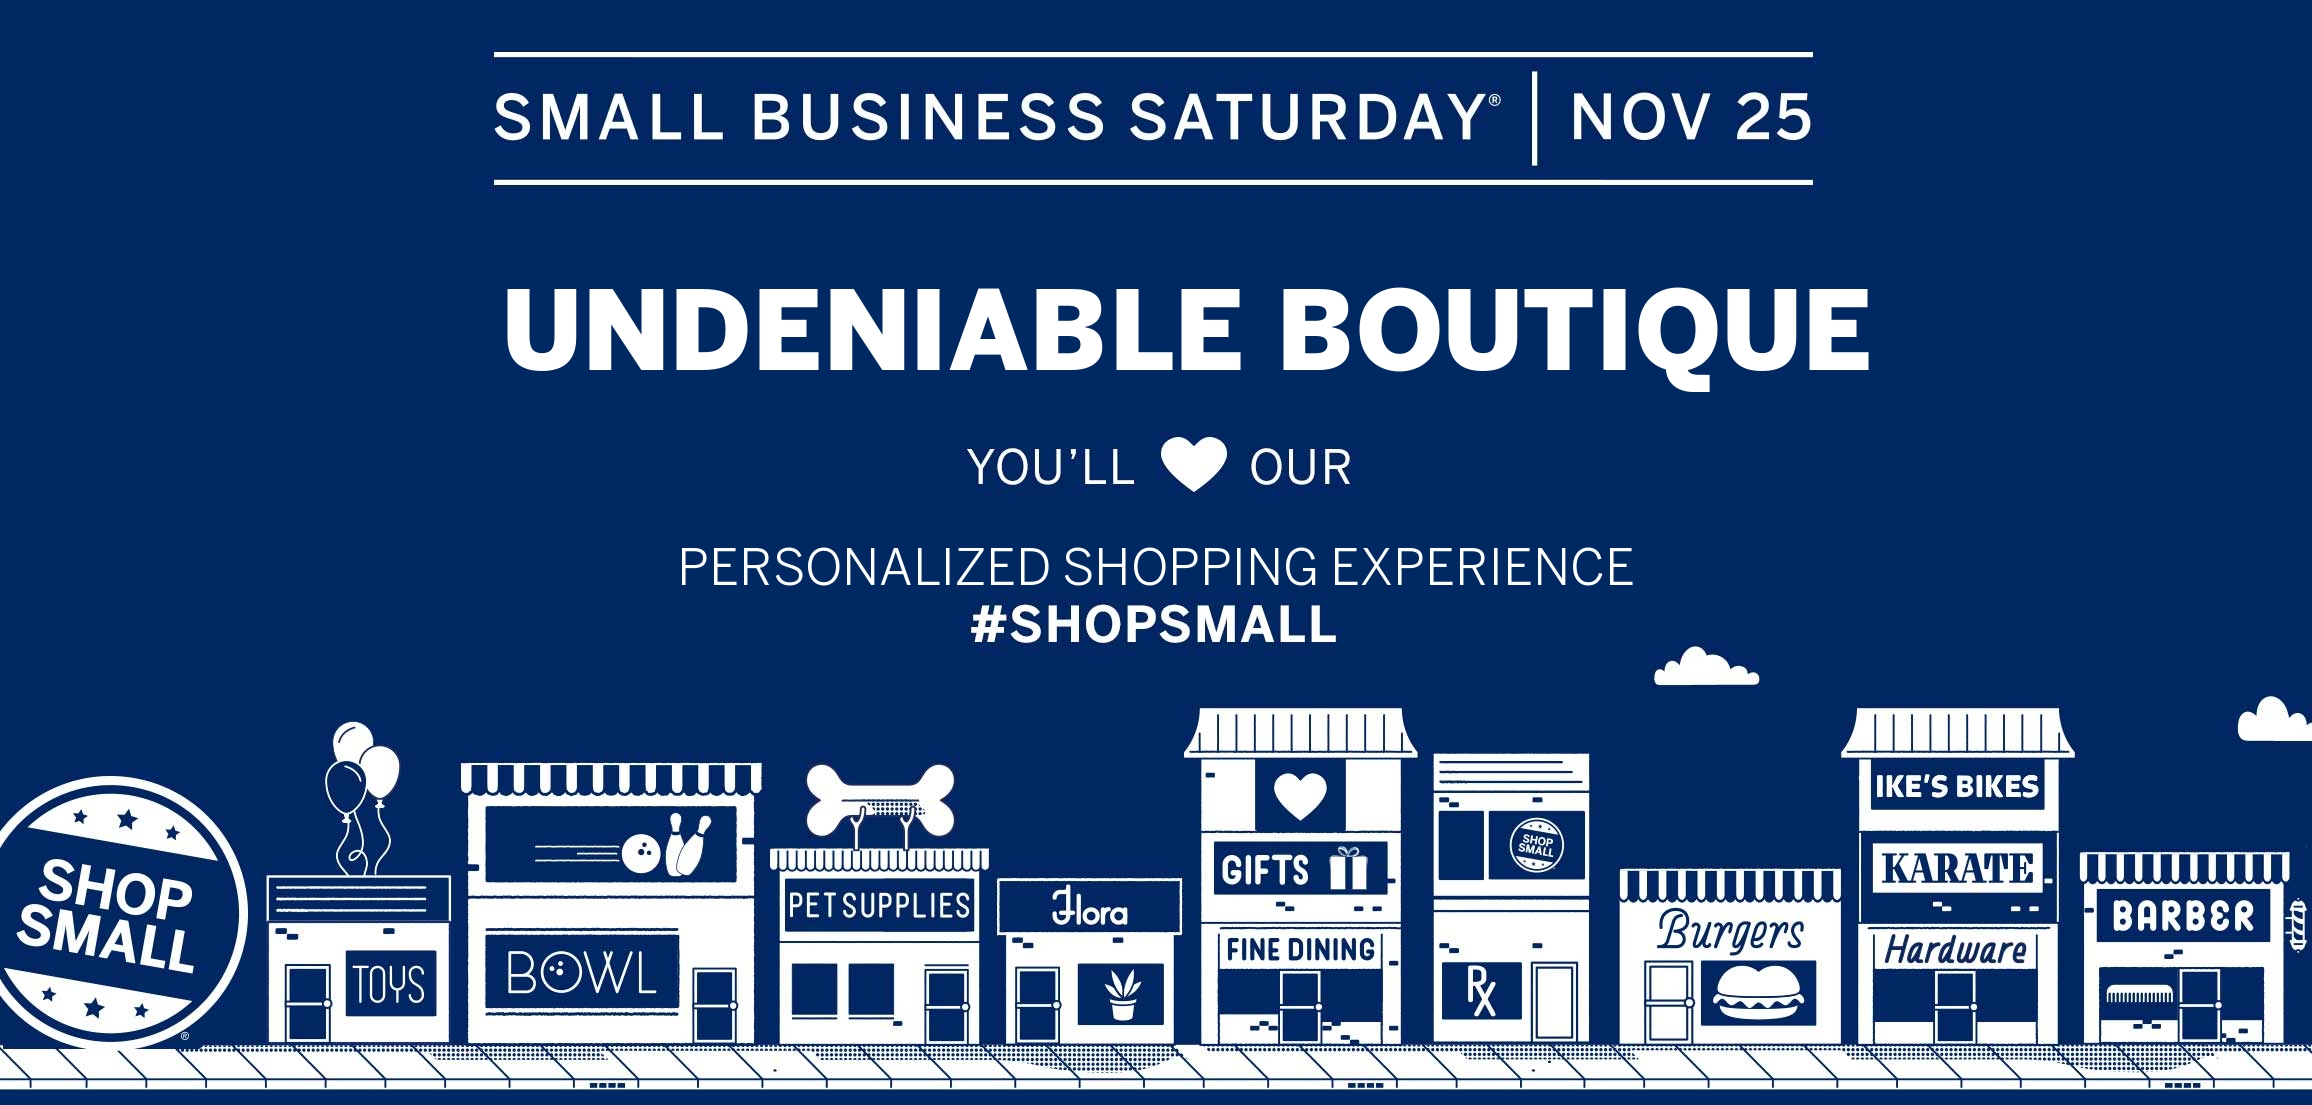 Undeniable Boutique Celebrate Anniversary Small Business Saturday